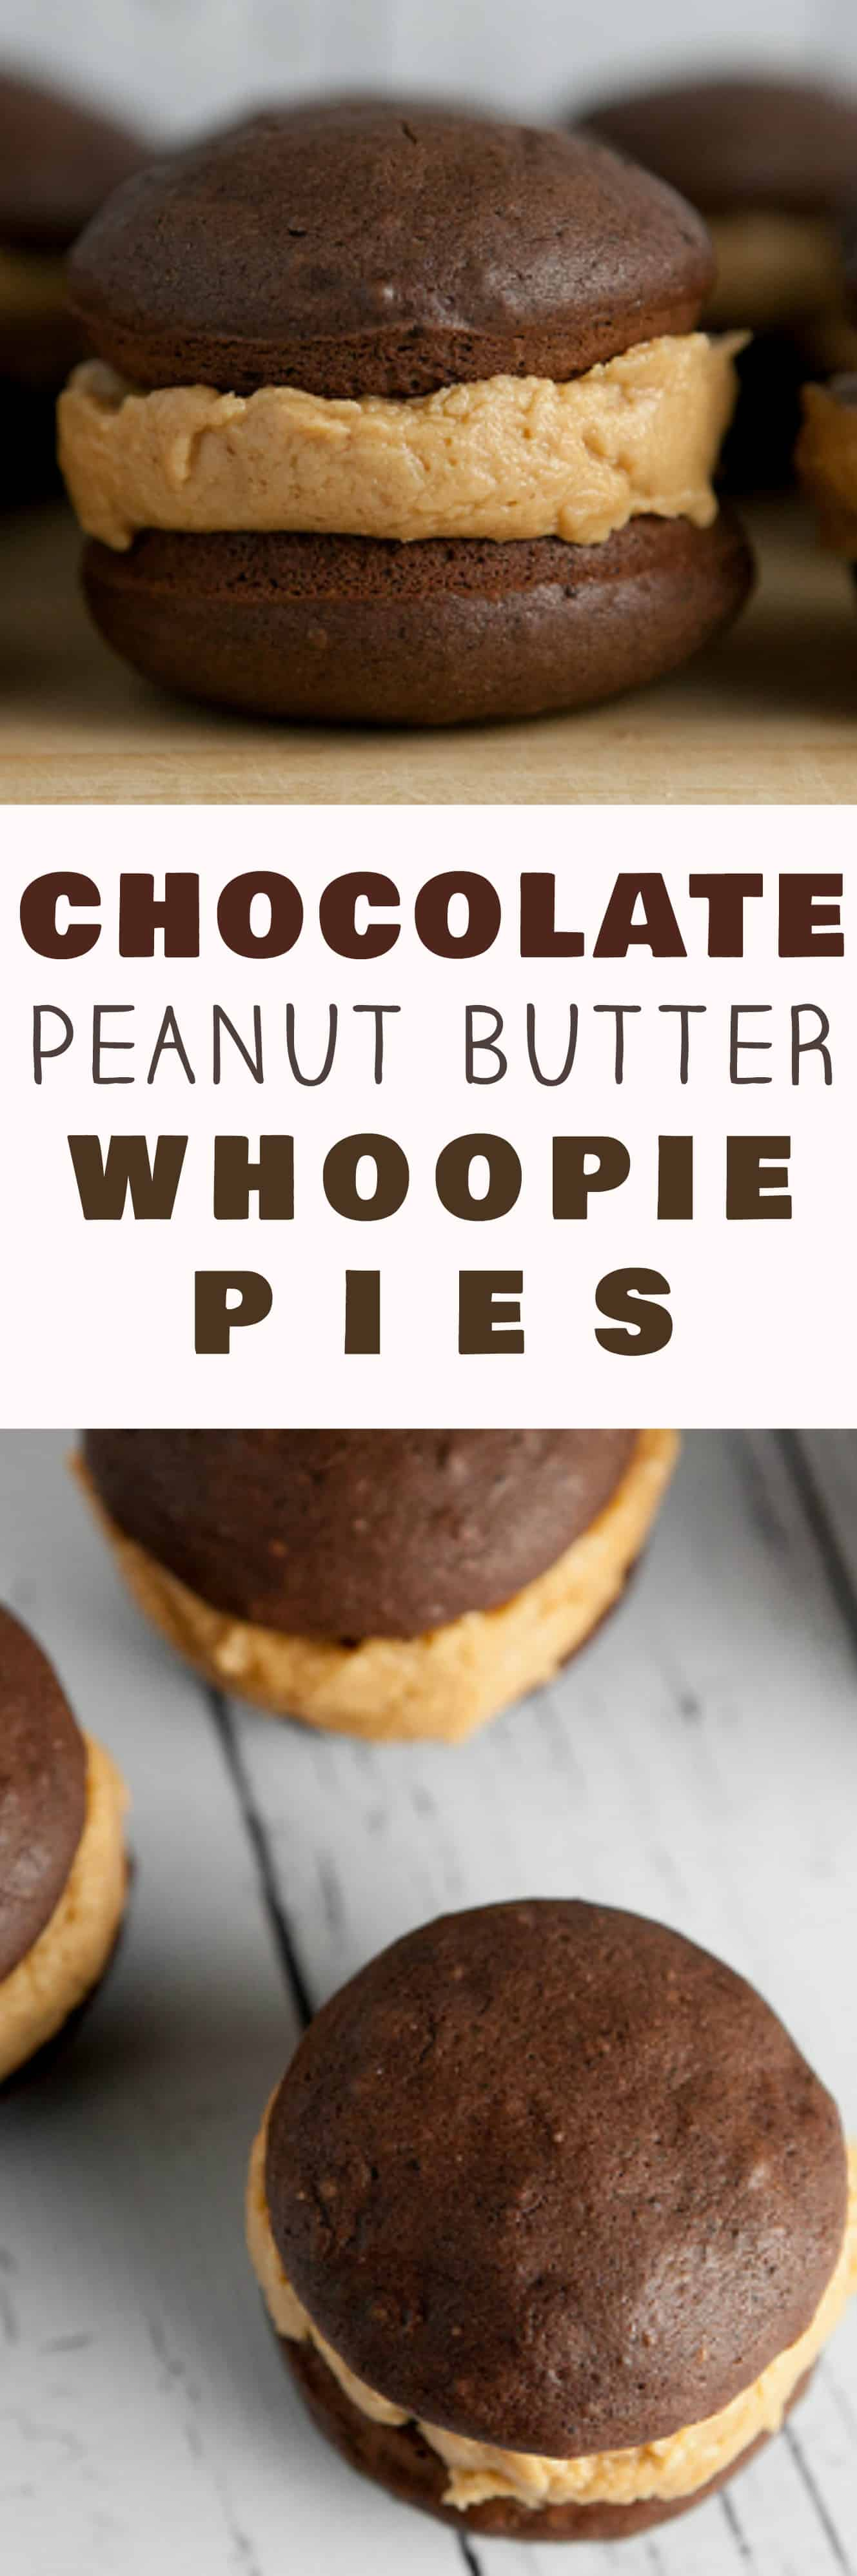 The BEST Chocolate Peanut Butter Buttercream Whoopie Pies! Bake up a dozen of these classic Chocolate Whoopie Pies with this easy homemade recipe. These pies are extra moist with DELICIOUS peanut butter buttercream filling - perfect for desserts and parties!